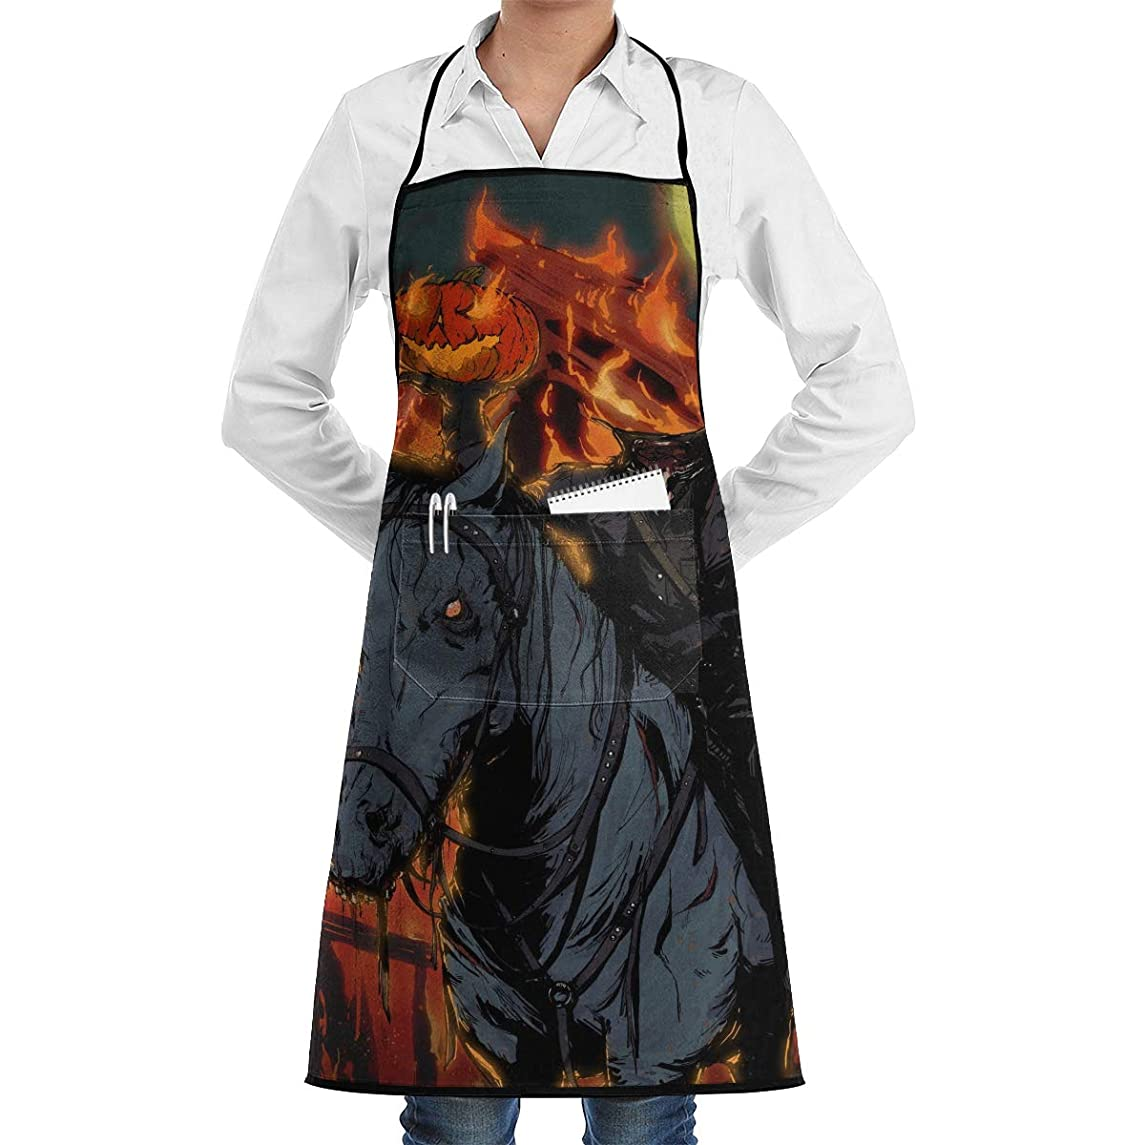 Headless Horseman Horse Fire Halloween Paiting Utility Activity Toolbelt Work Best Prime Supply Customize Smocks Adjustable No-tie Full Cooking Apron with Pockets for Kids Teacher